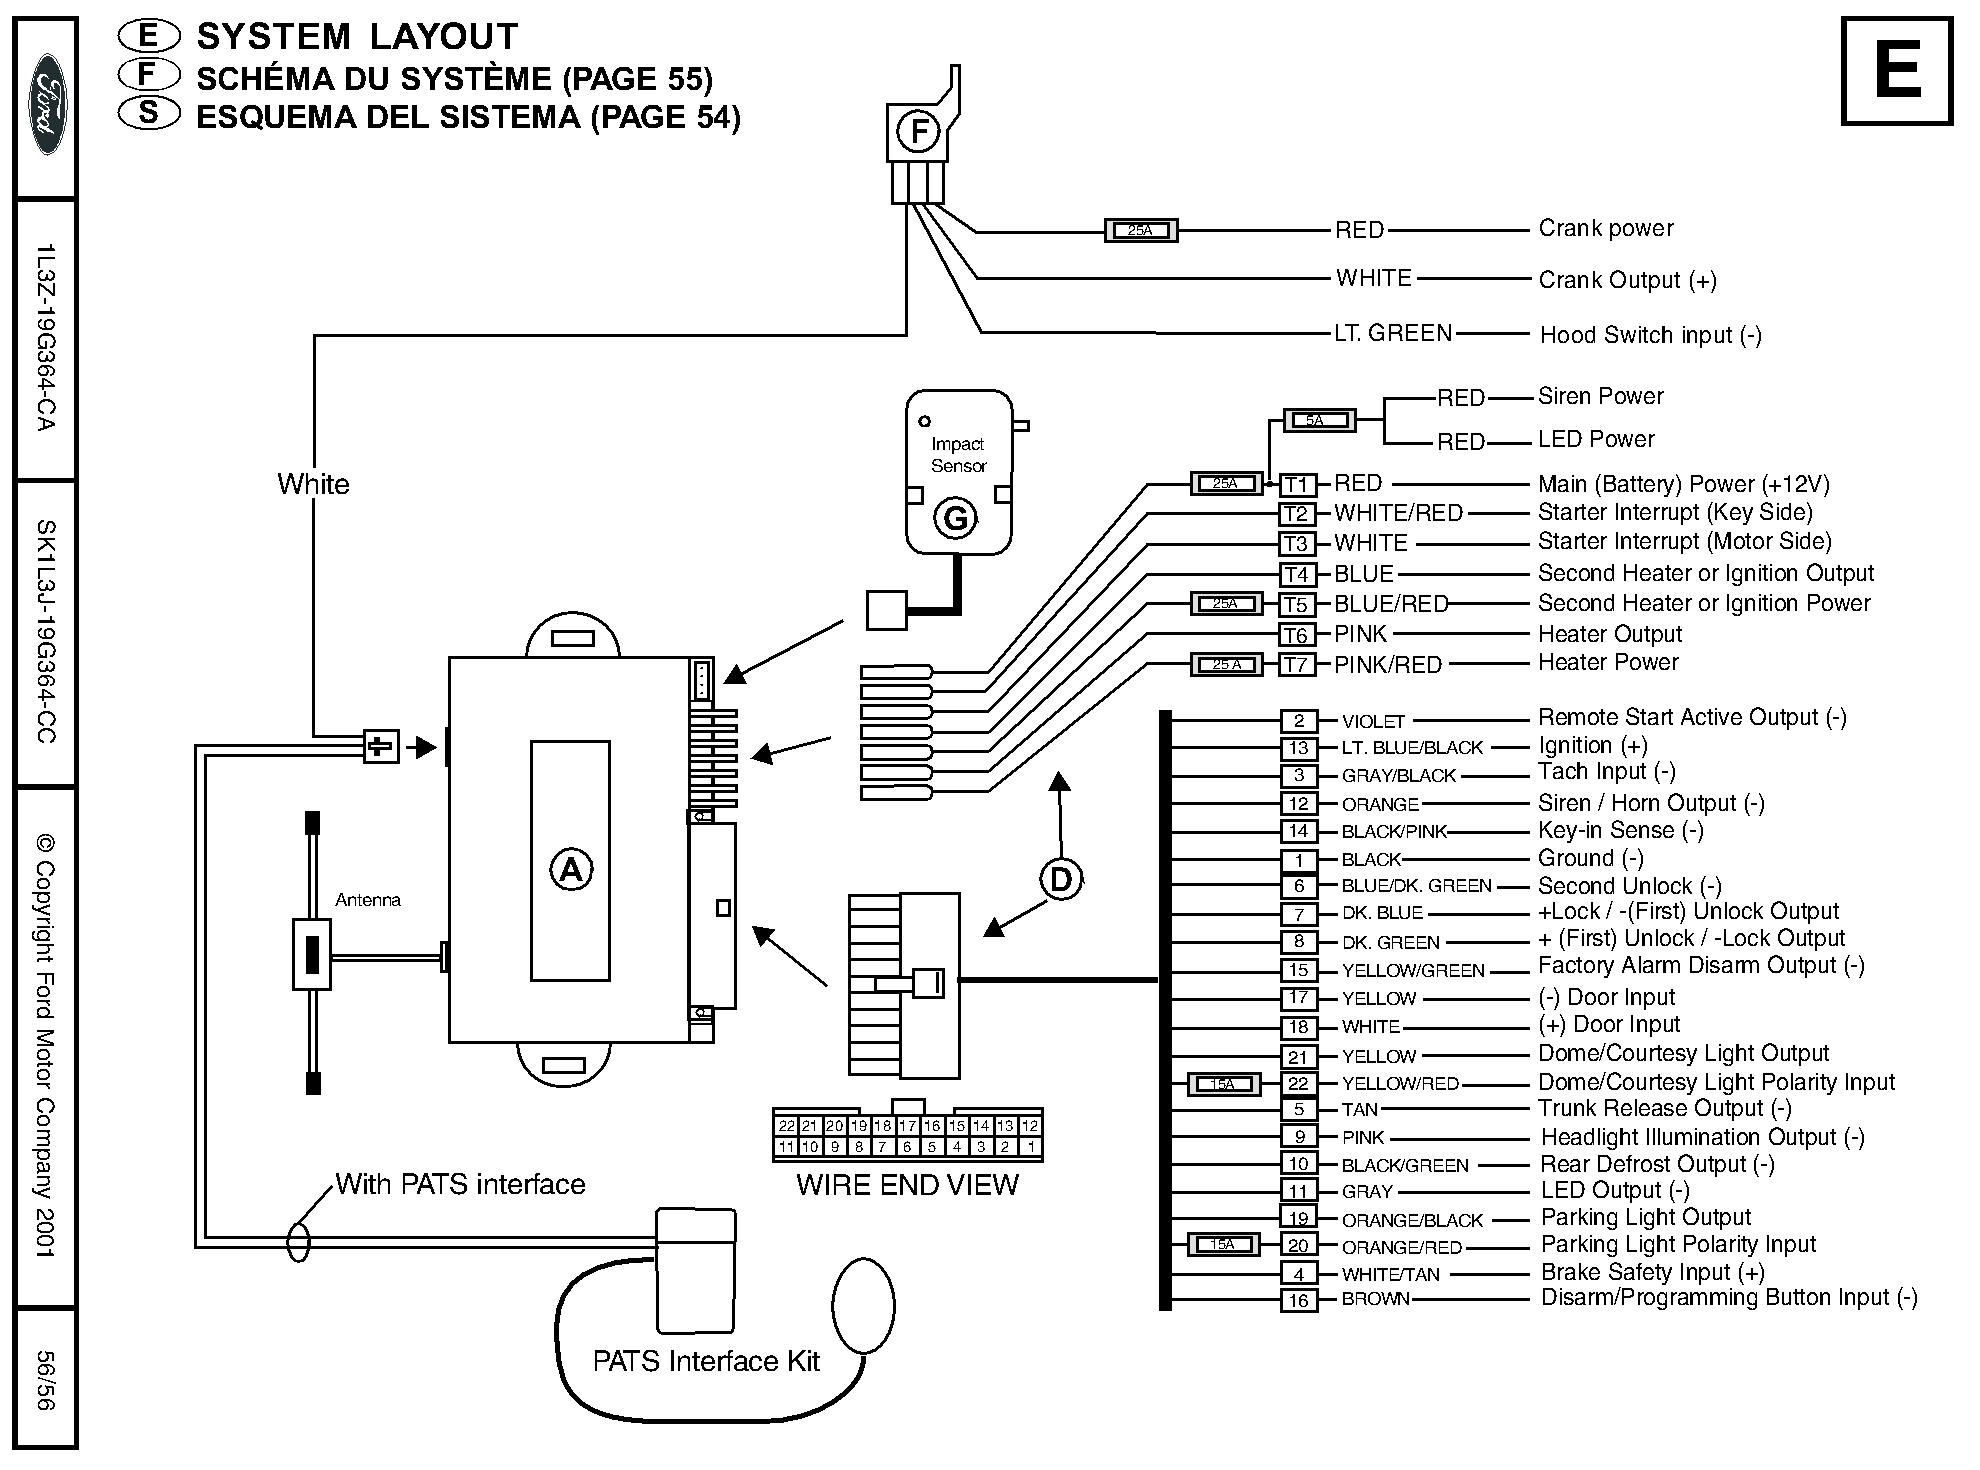 Wiring Diagram 2005 Ford Escape The Wiring Diagram readingratnet